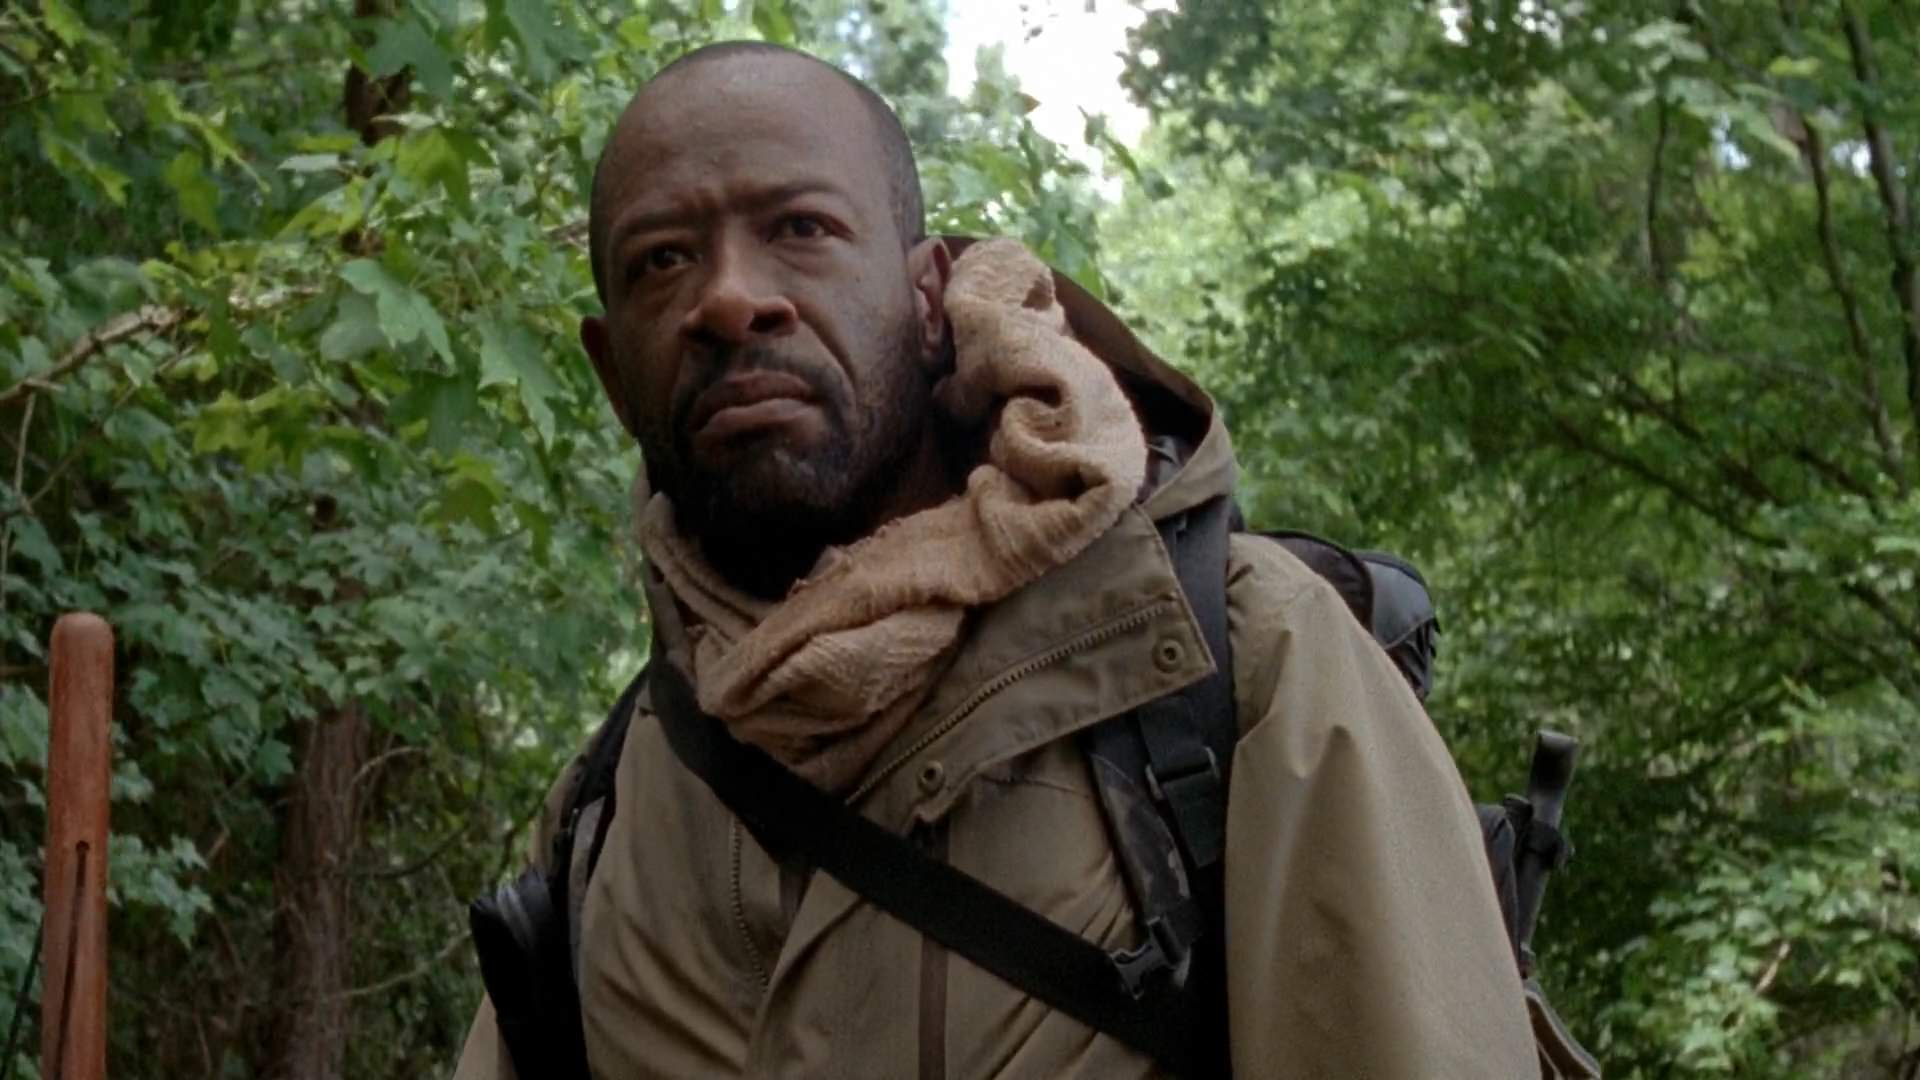 'The Walking Dead' ratings keep on falling